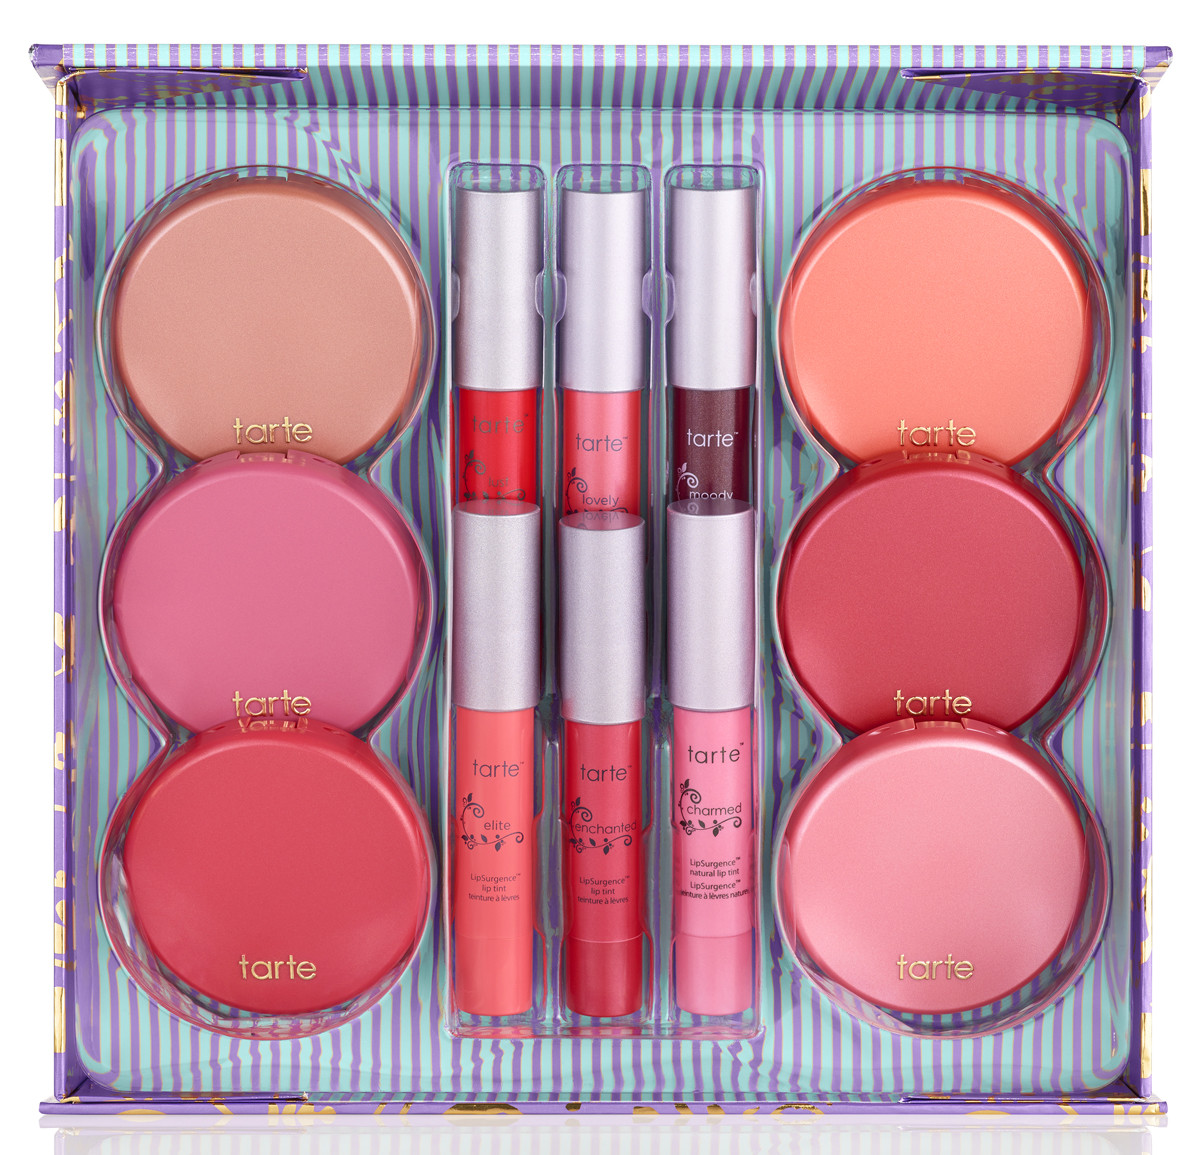 Tarte holiday 2014_Tarte Dream Come Hue or Sephora Wow set